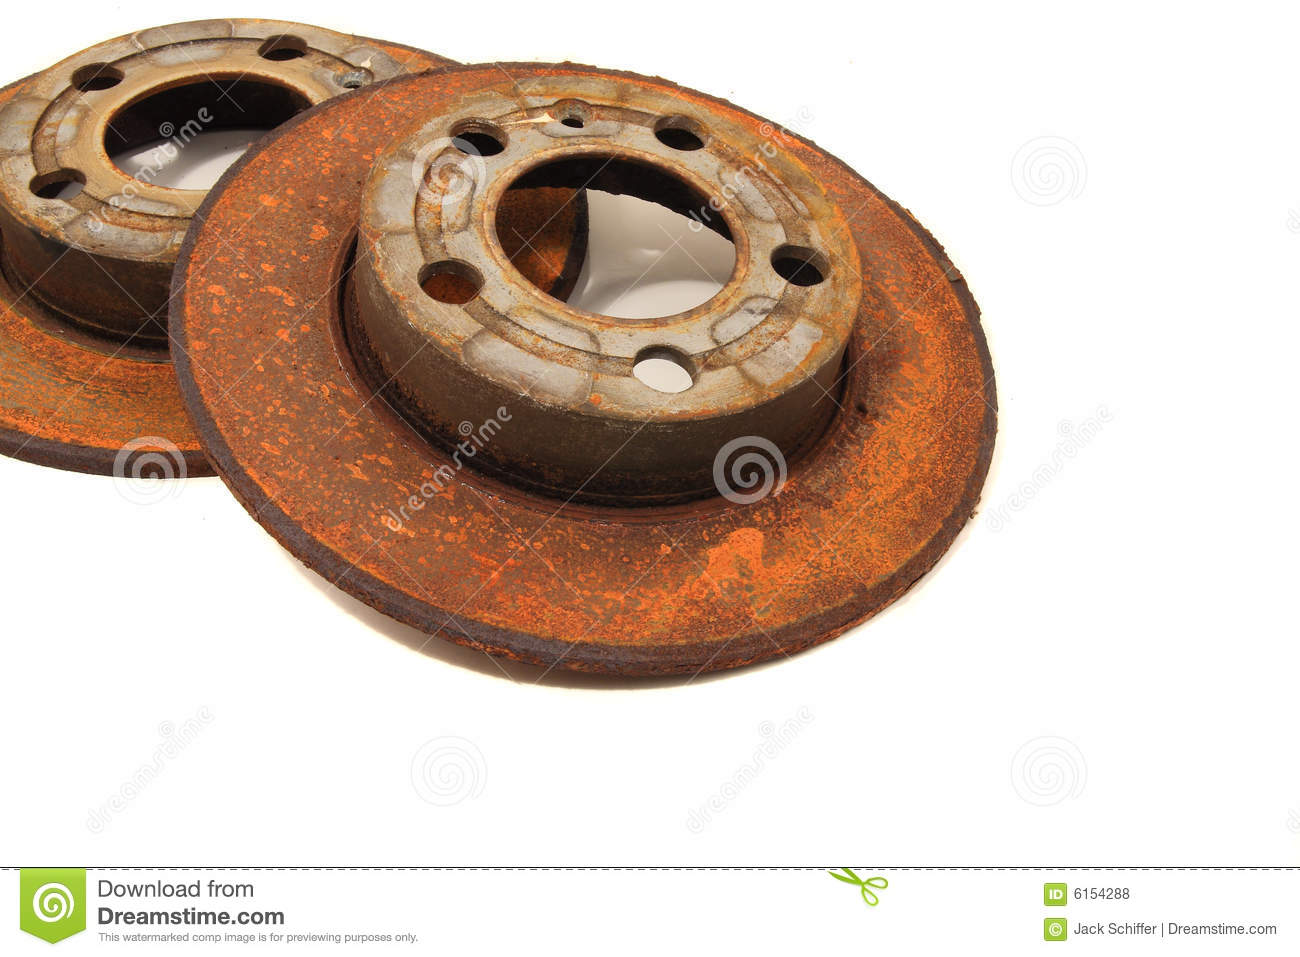 how to clean rusty rotors